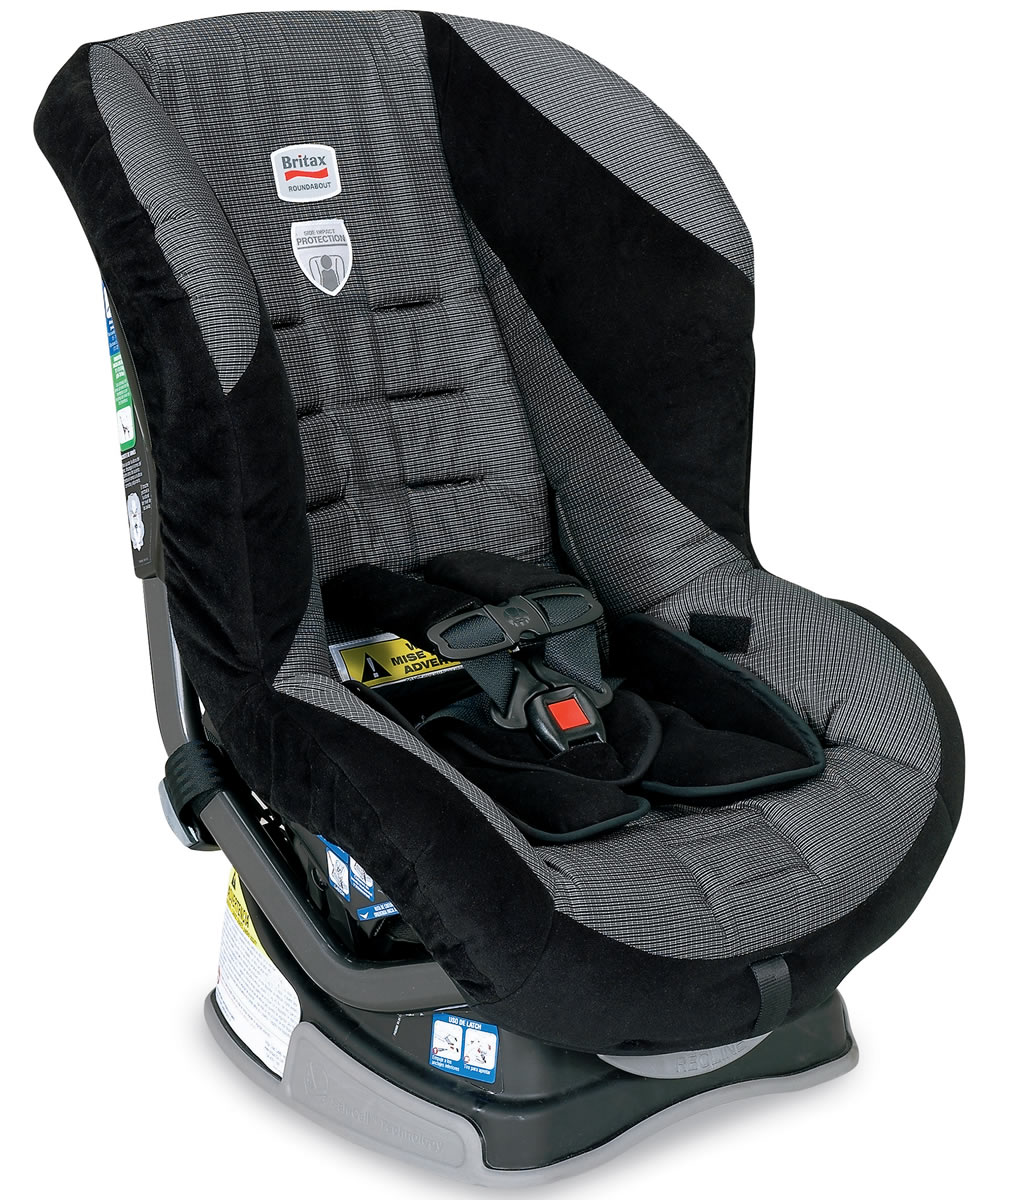 britax roundabout g4 convertible car seat onyx. Black Bedroom Furniture Sets. Home Design Ideas